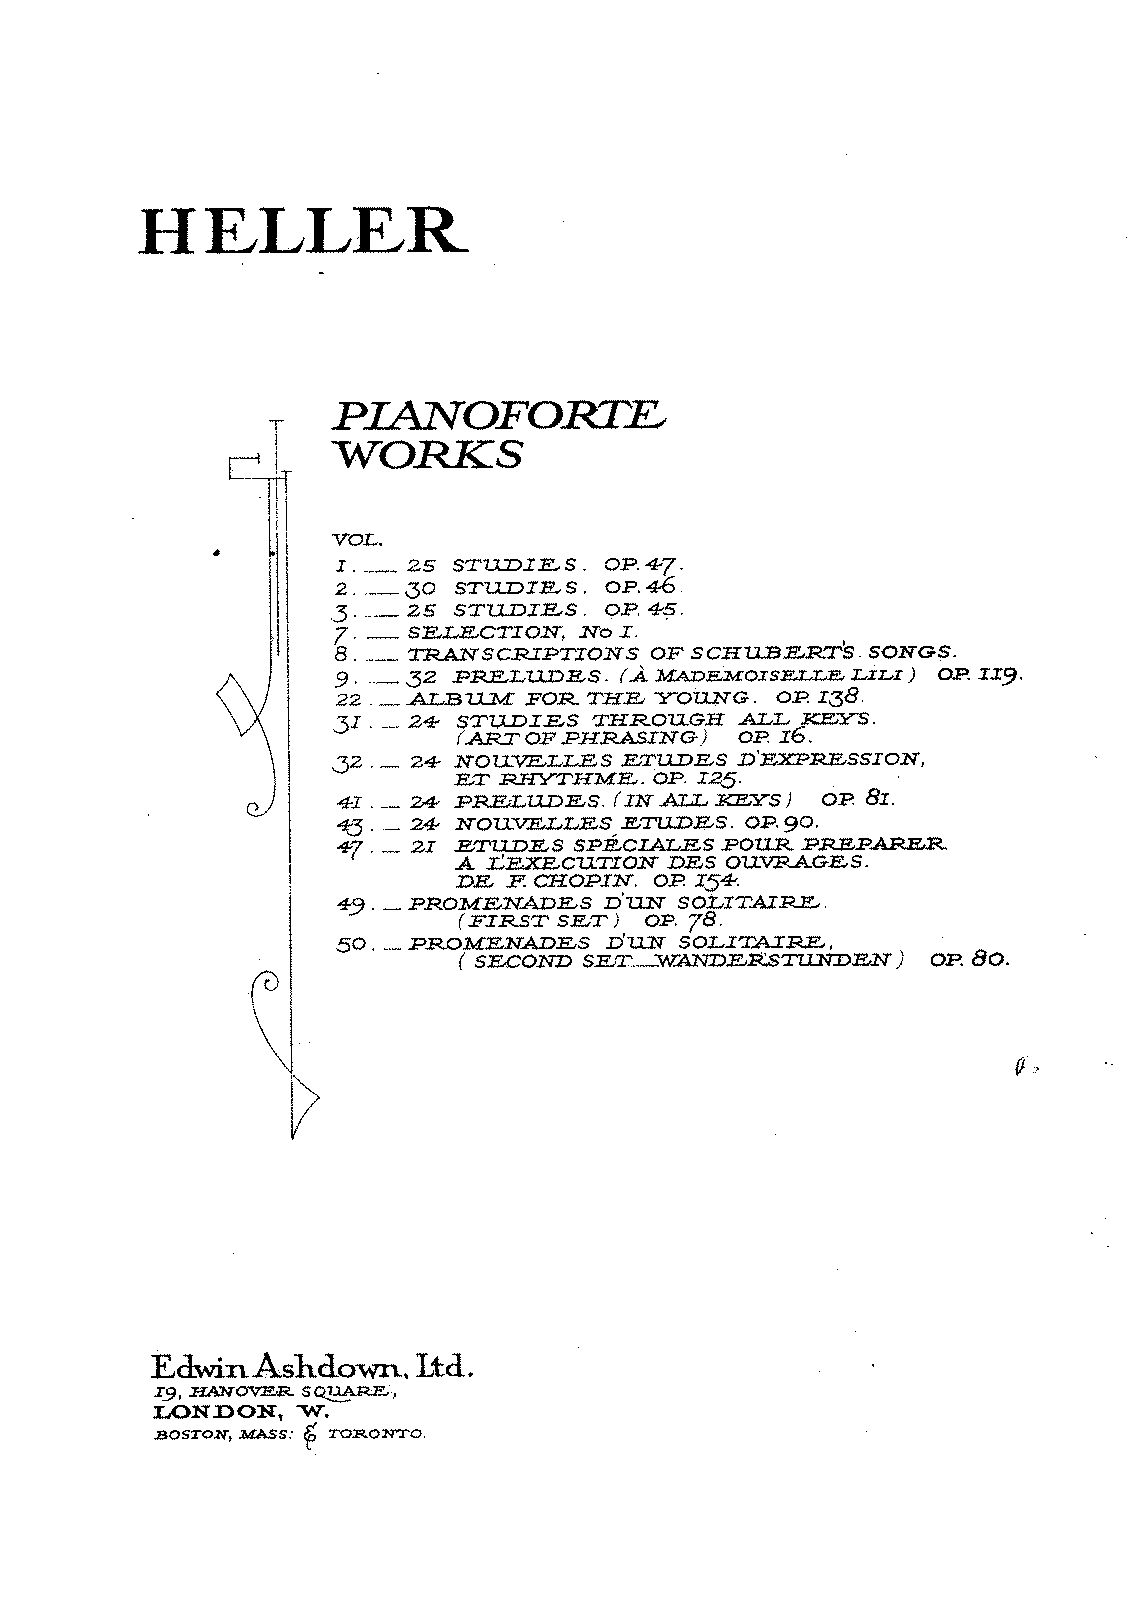 Heller - Op.138 - Album for the YOung.pdf